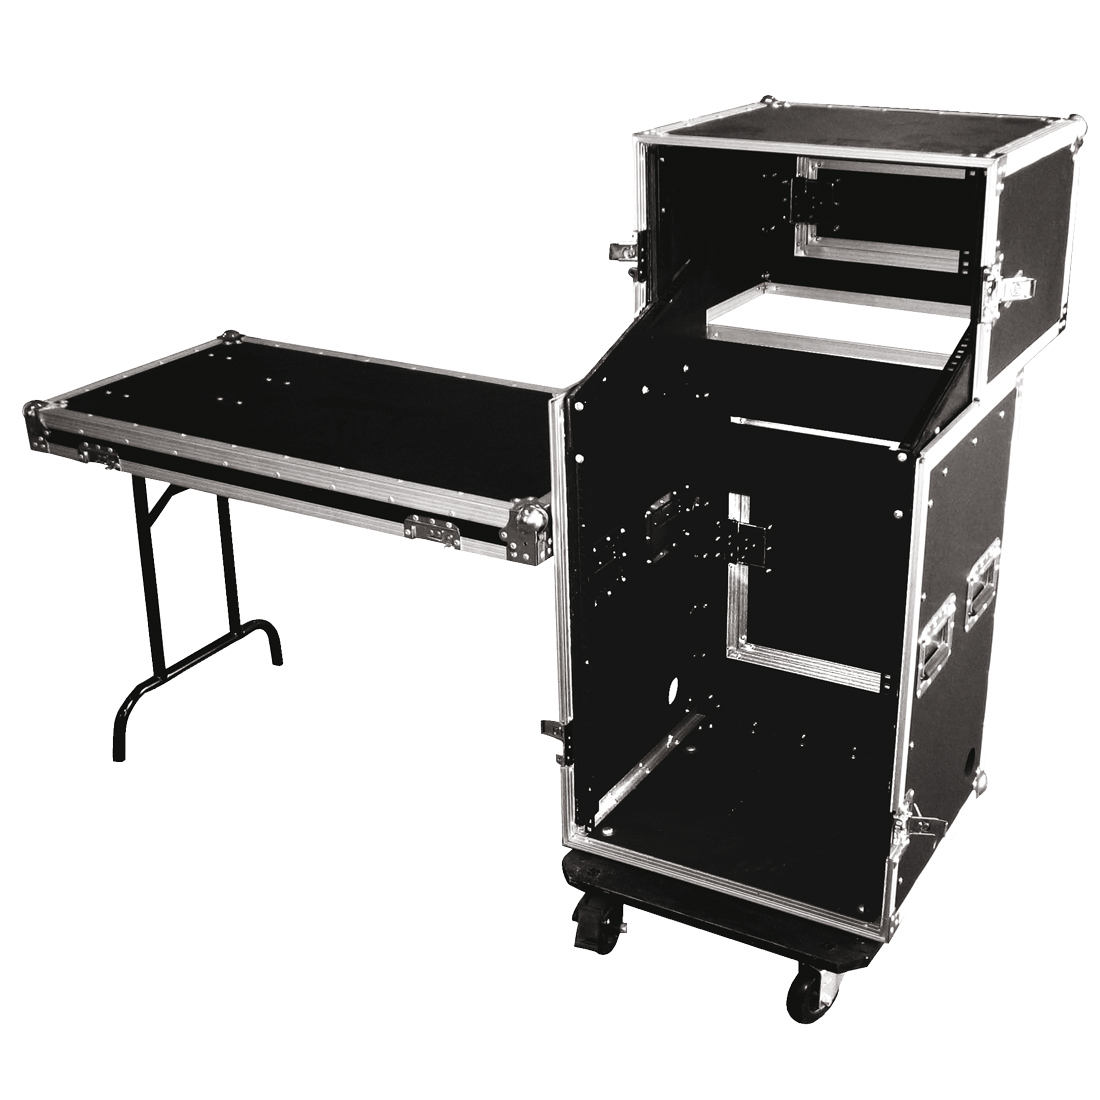 ACF-SW/DJ FLEX CASE (table included)